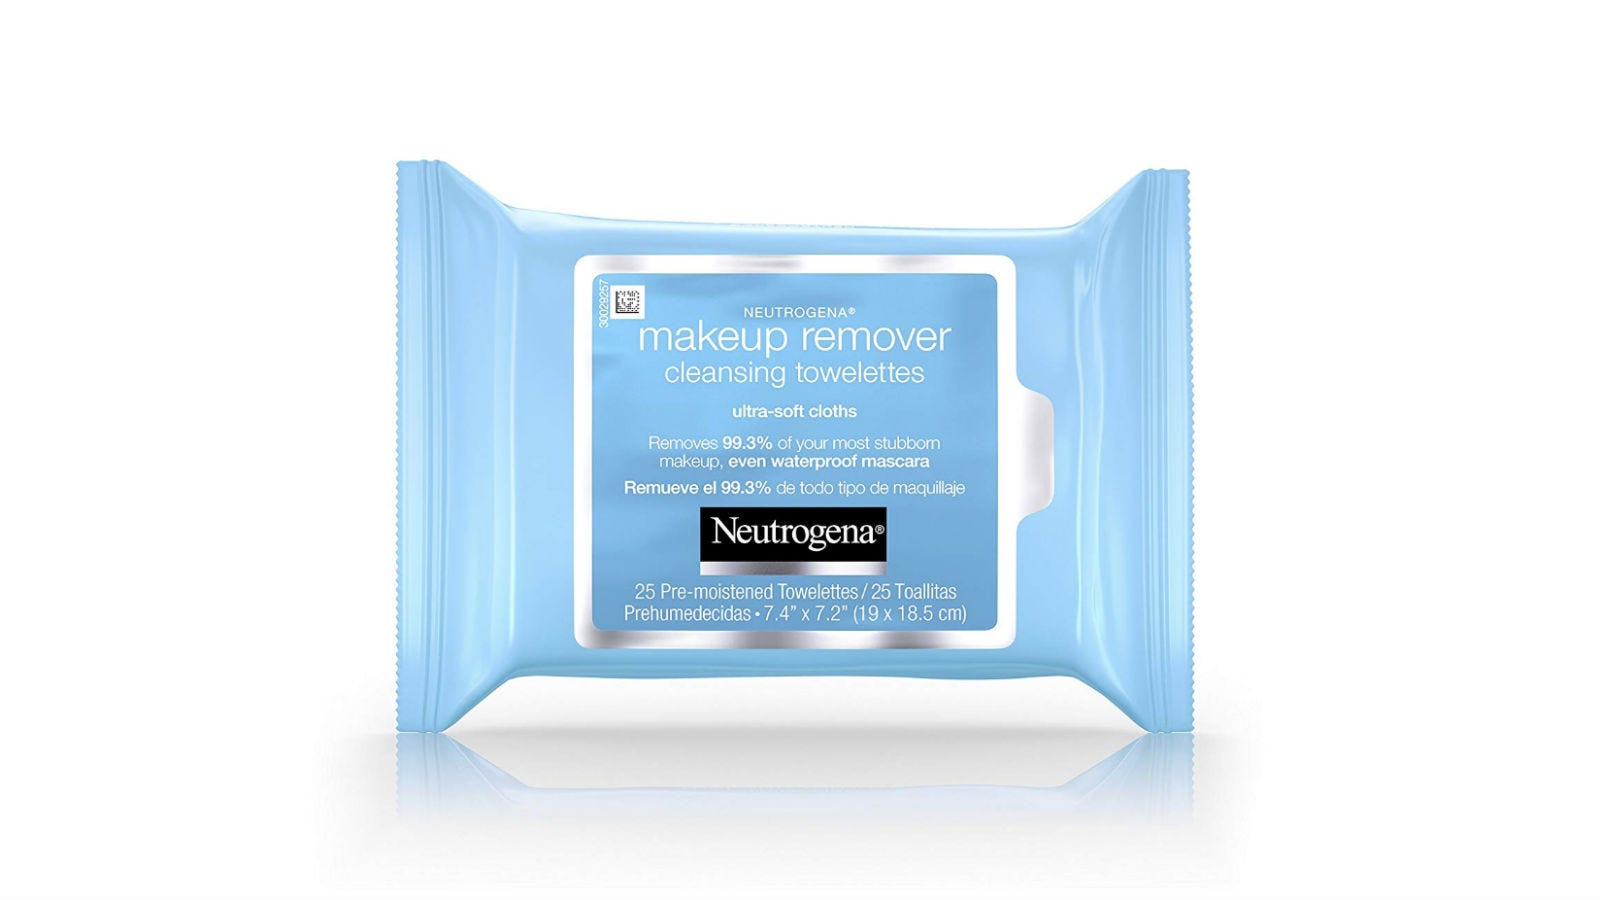 neutrogena makeup remover cleansing towlettes